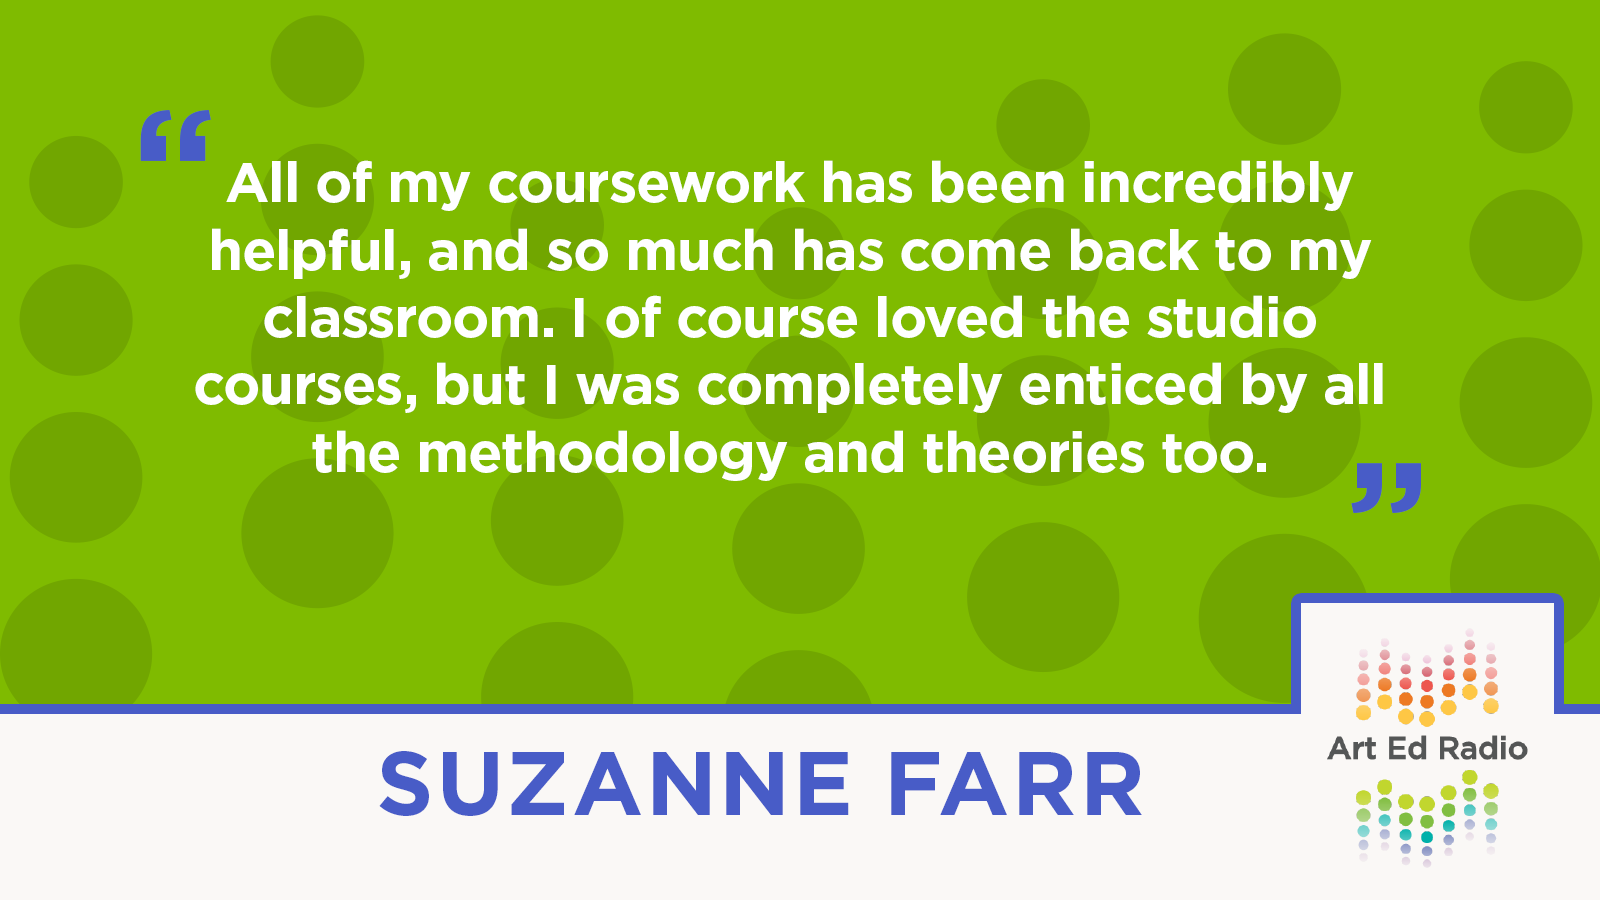 """""""All of my coursework has been incredibly helpful, and so much has come back to my classroom. I of course loved the studio courses, but I was completely enticed by all the methodology and theories too."""" --Suzanne Farr"""